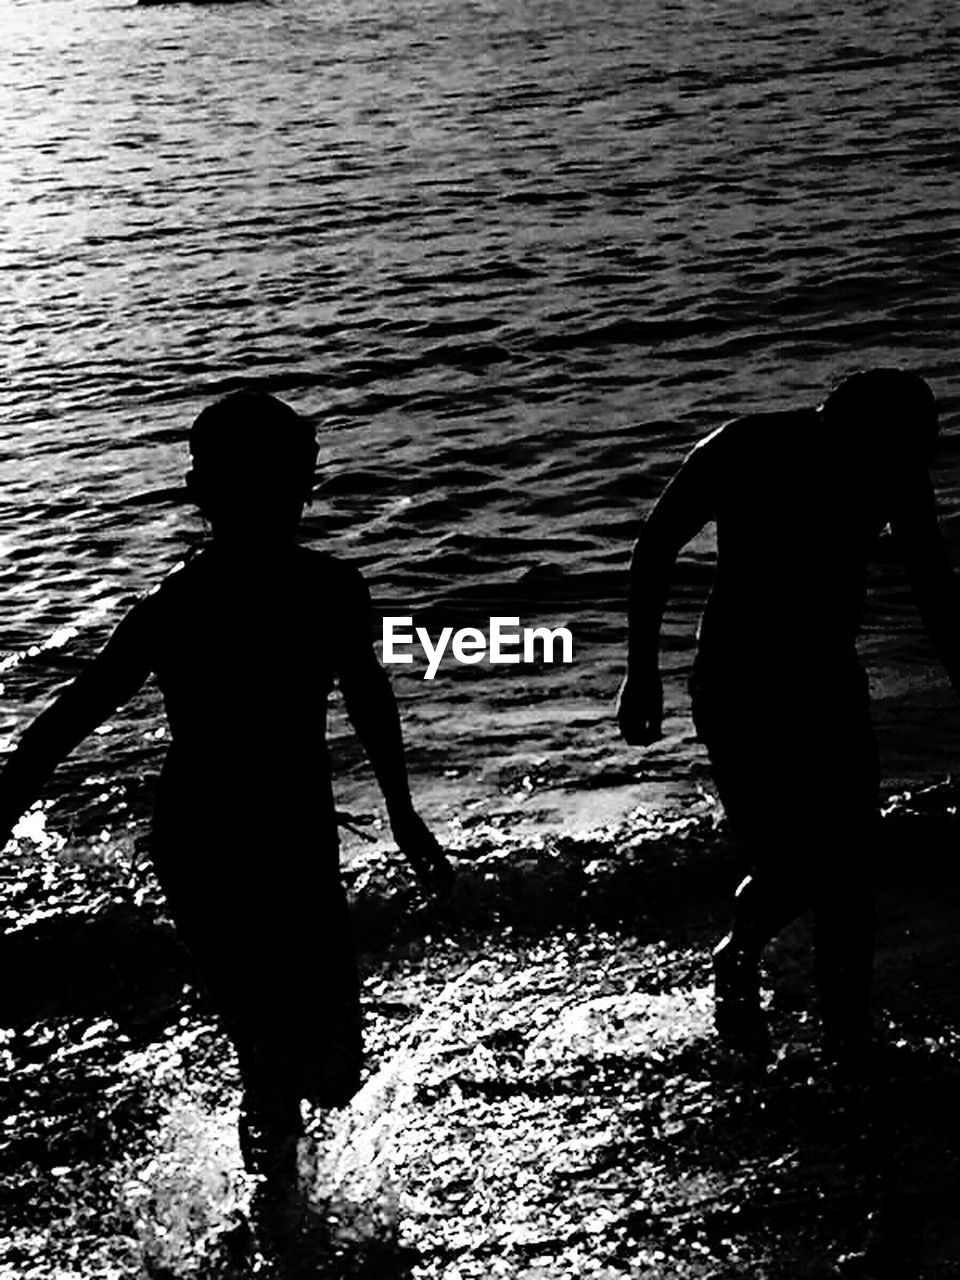 water, two people, real people, silhouette, togetherness, rear view, men, nature, lifestyles, outdoors, leisure activity, lake, bonding, women, beauty in nature, standing, day, scenics, ankle deep in water, people